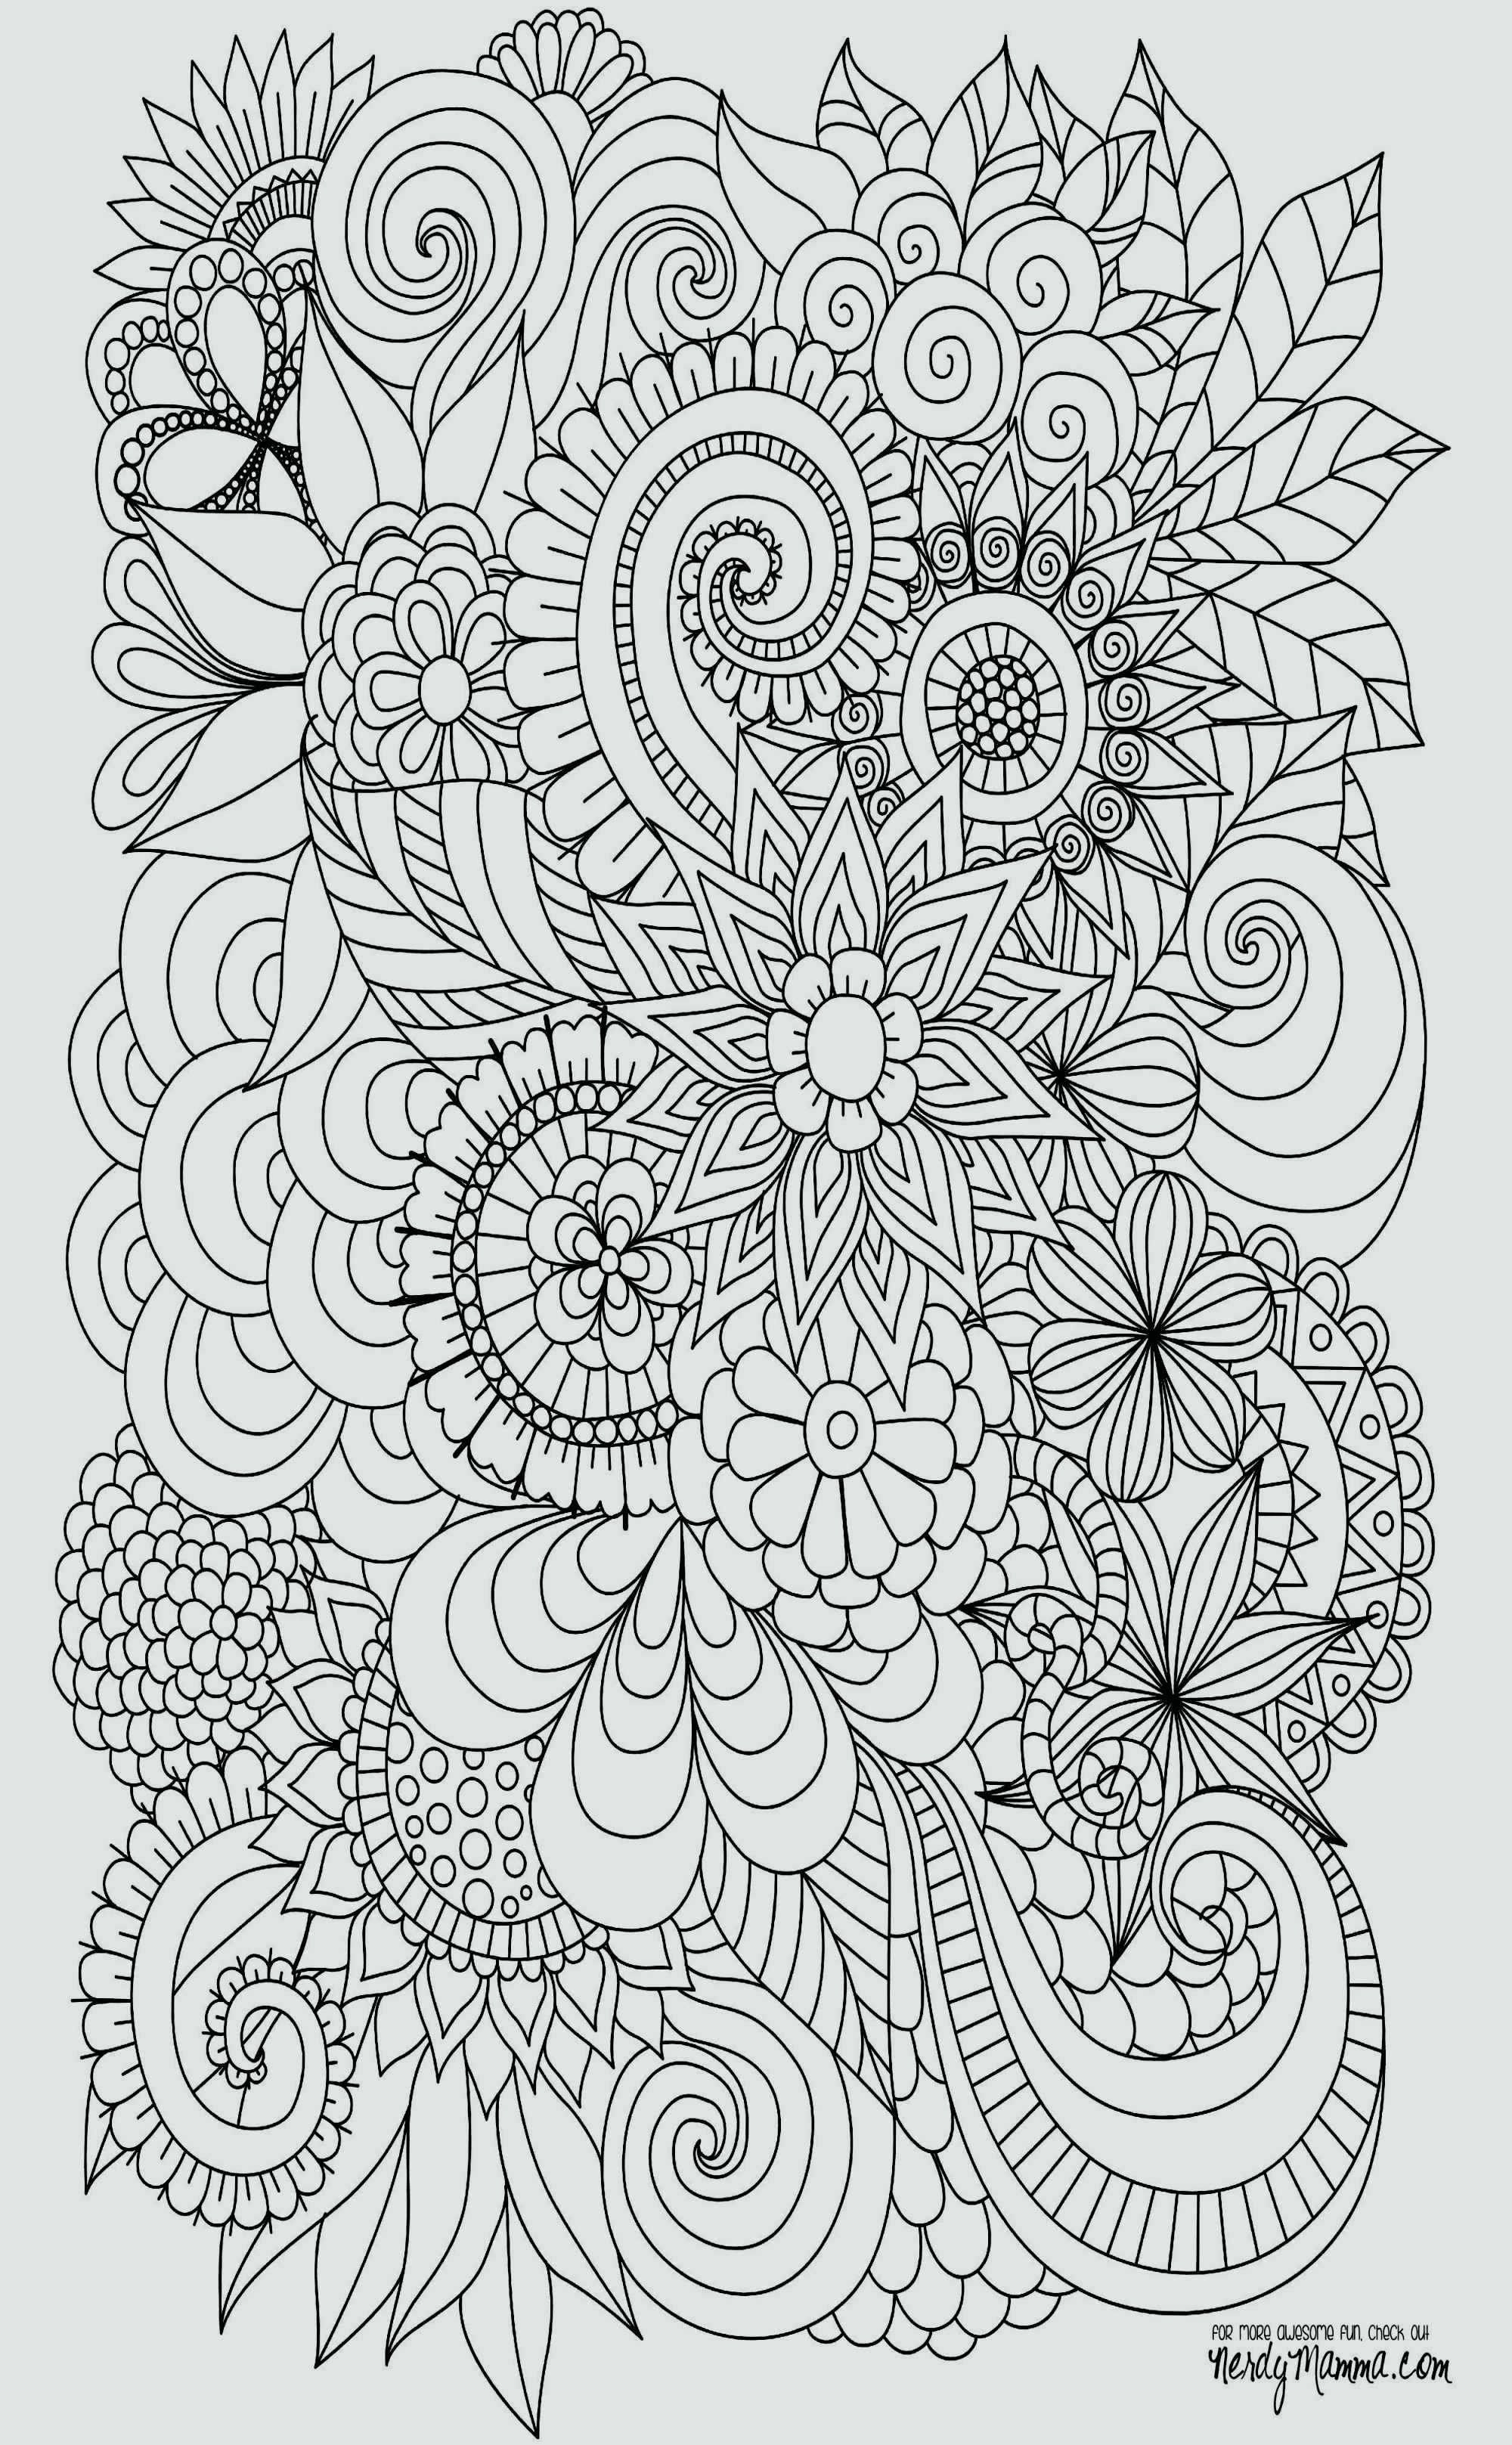 Coloring Pages Intricate Design Inspirational Intricate Coloring Sheets For Adults The Abstract Coloring Pages Detailed Coloring Pages Mandala Coloring Pages